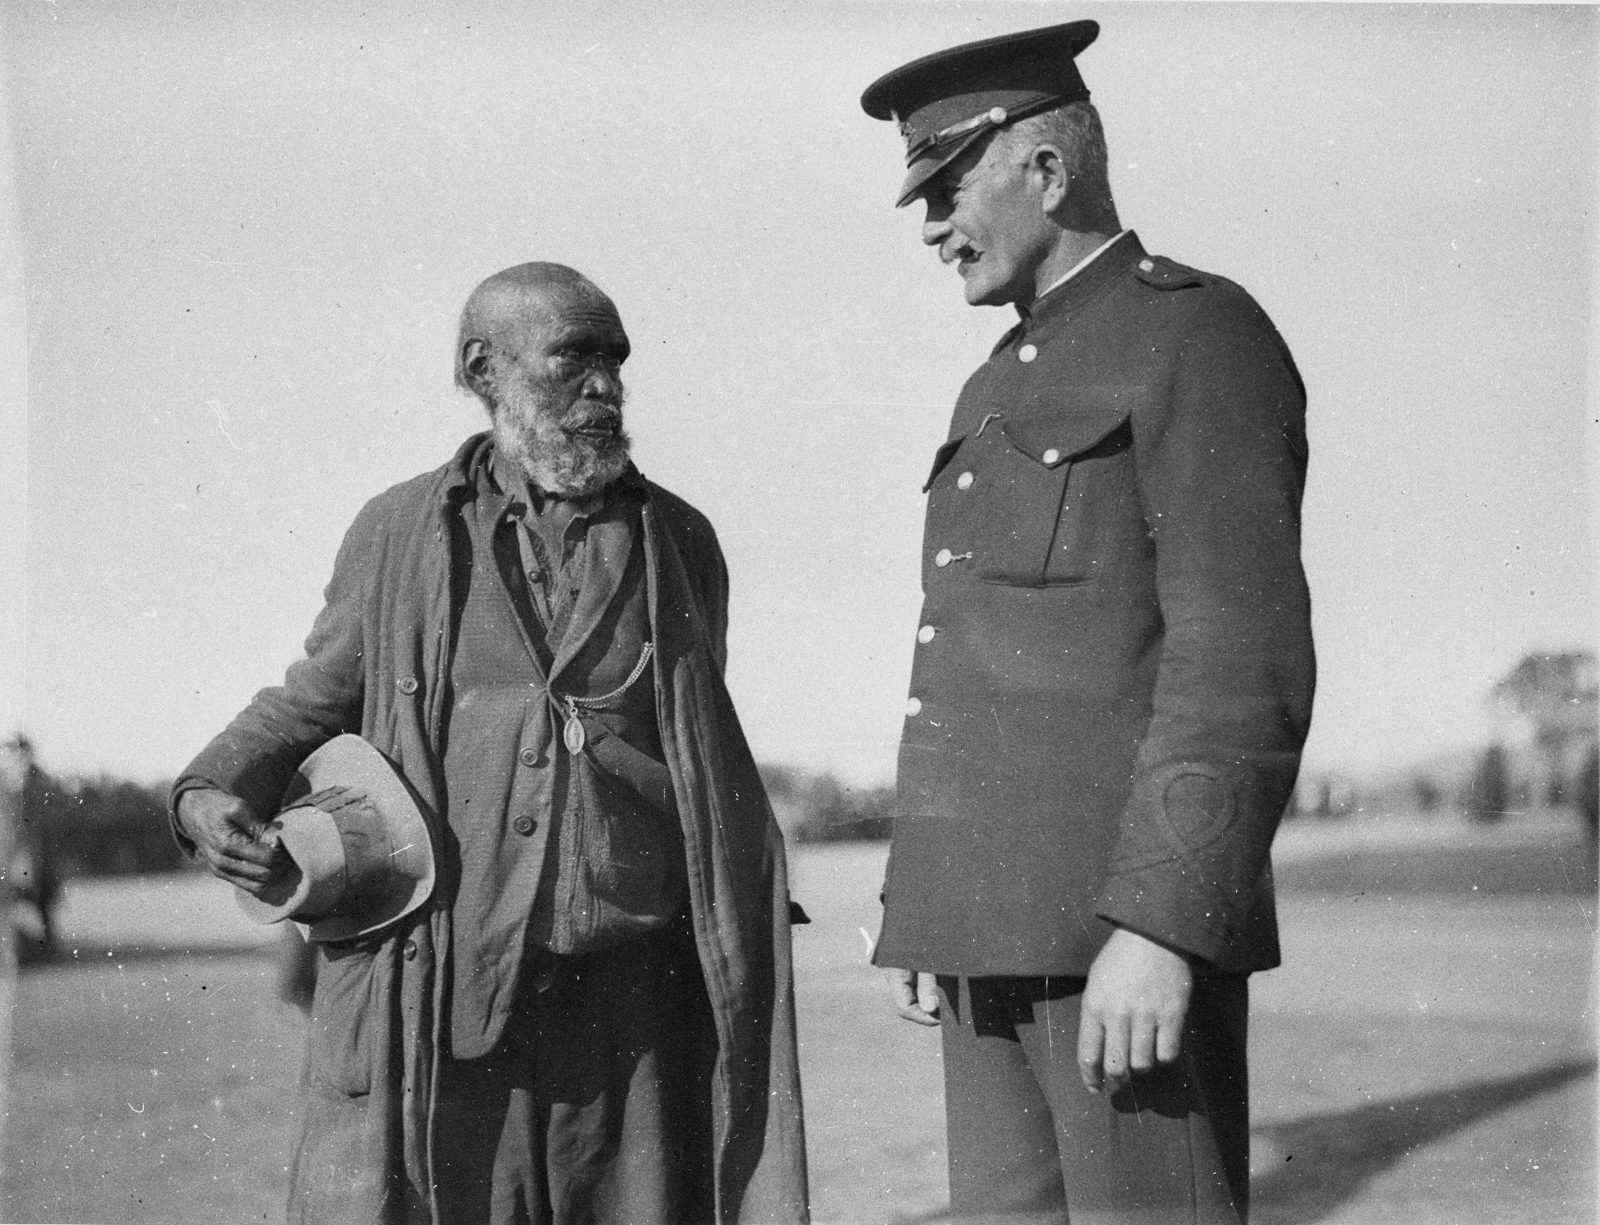 A police officer speaking to an Aboriginal man